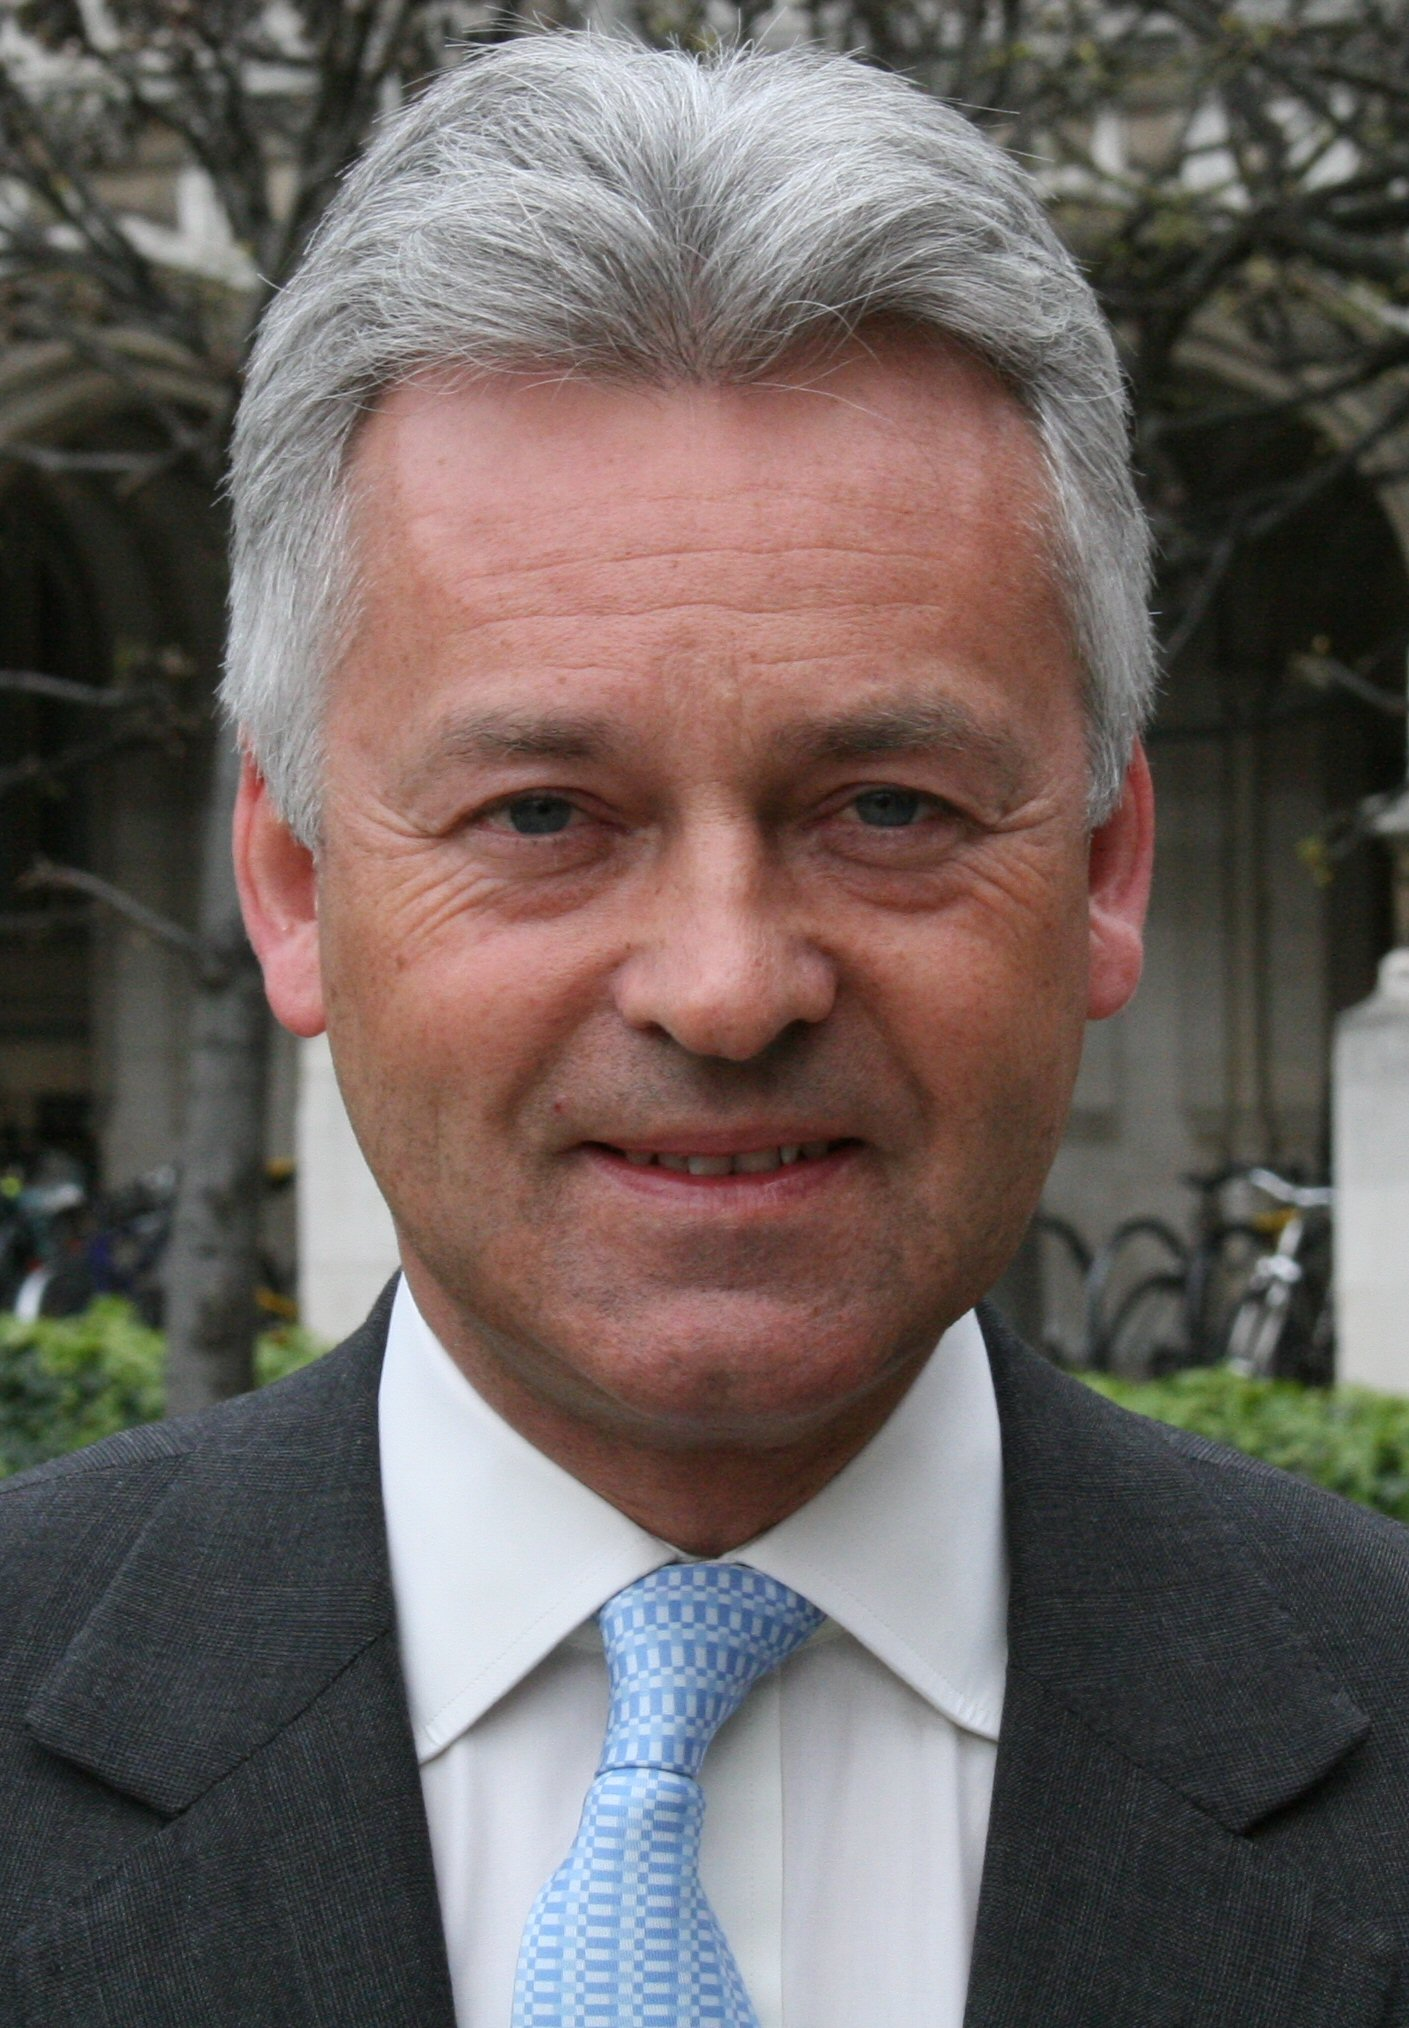 Alan Duncan Net Worth